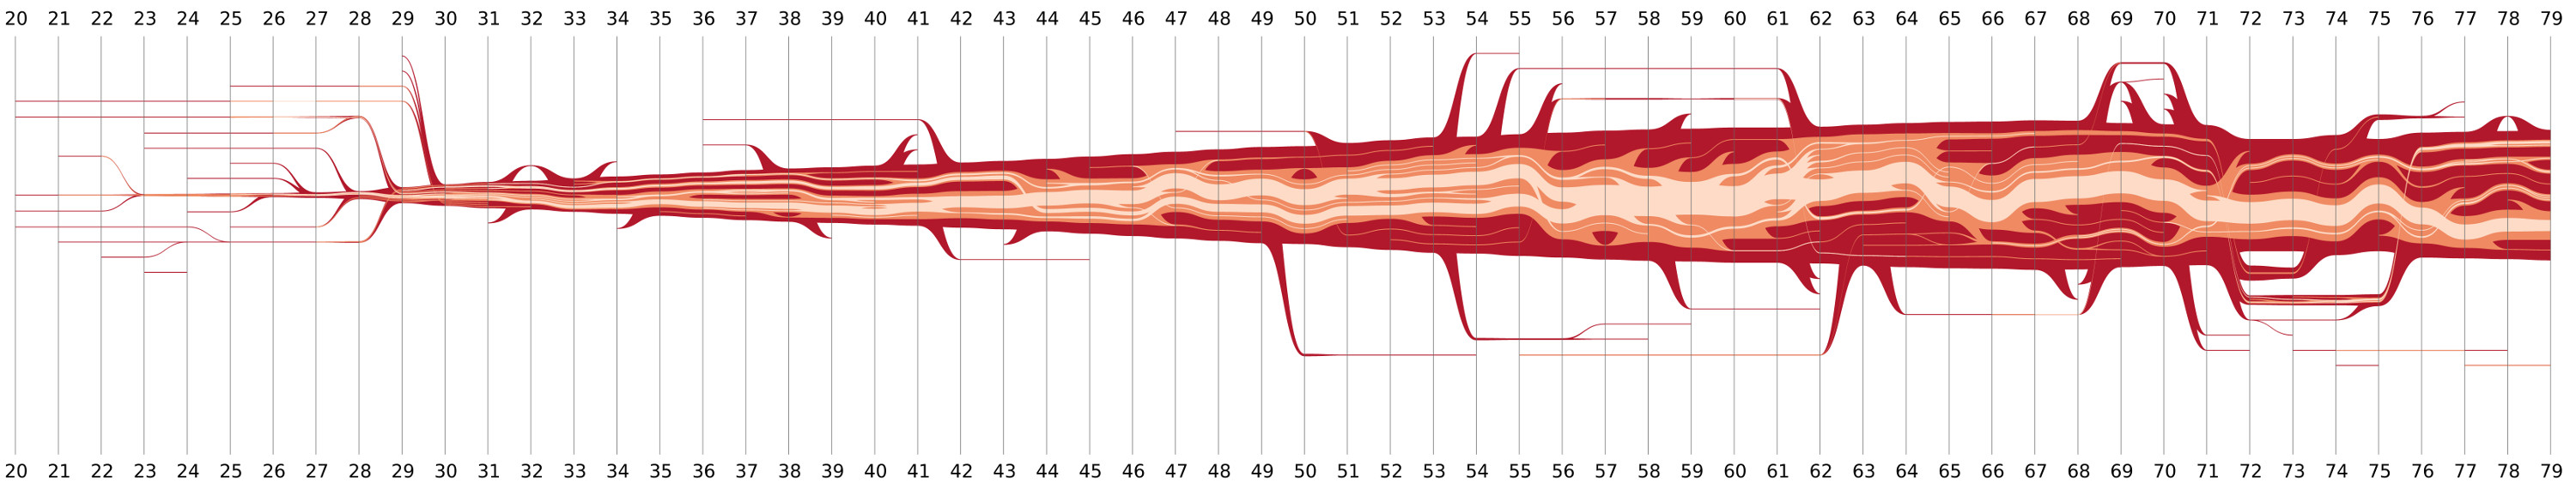 Nested Tracking Graph for the Viscous Finger Dataset